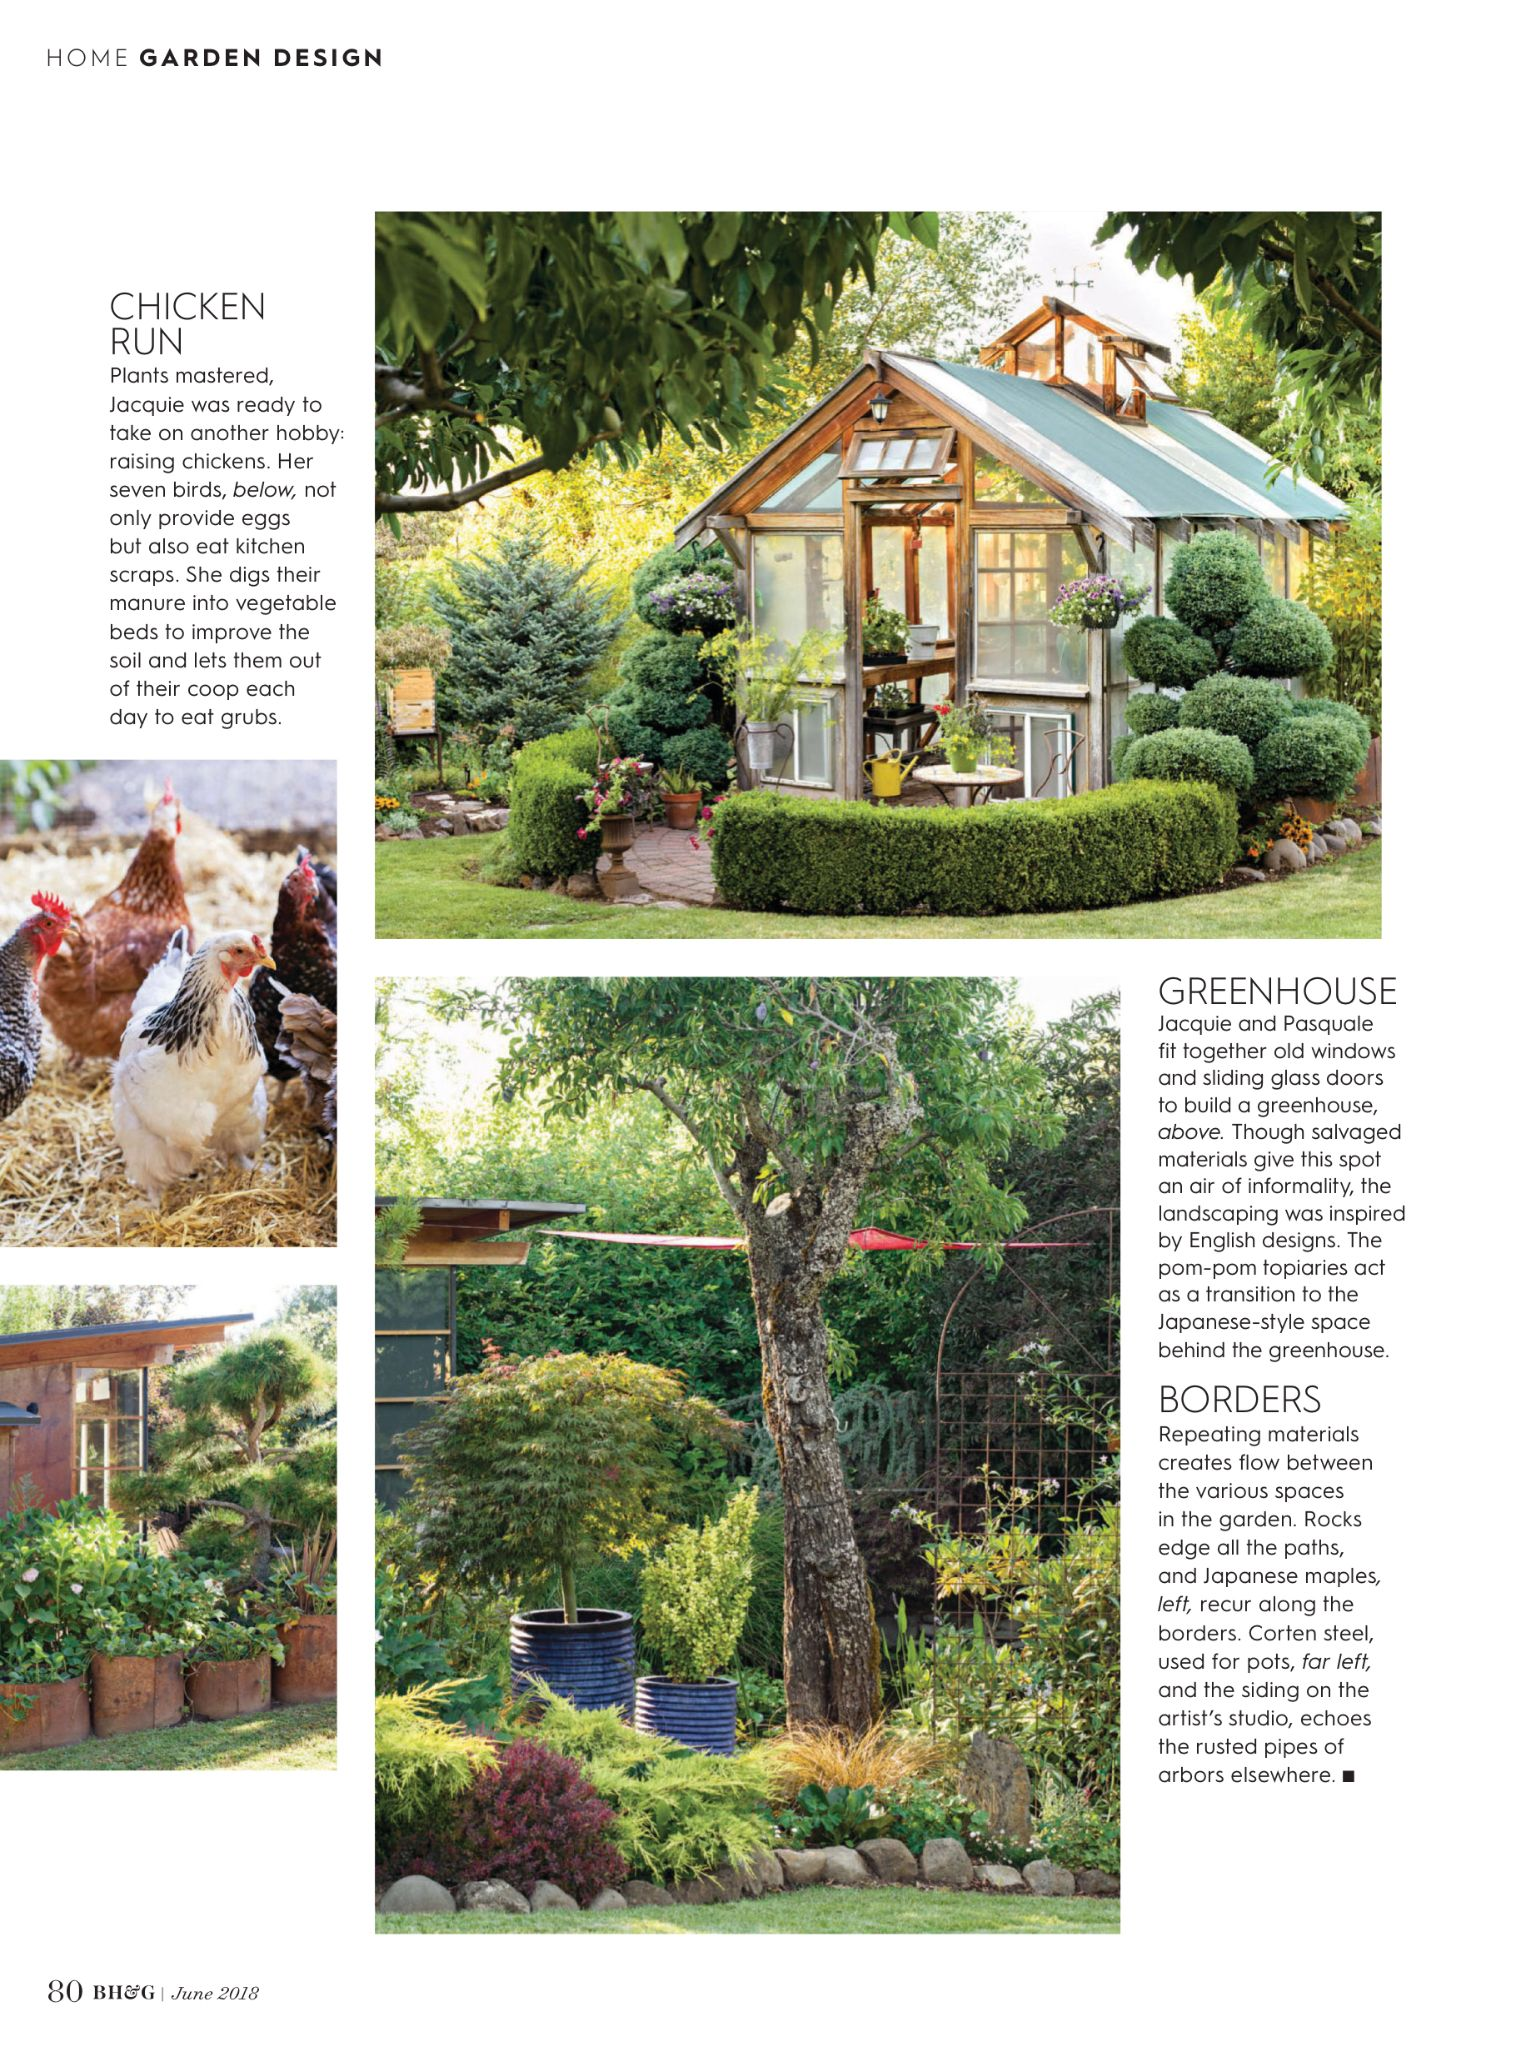 Living Laboratory From Better Homes And Gardens June 2018 Read It On The Texture Unlimited Access To 200 Top Magazines